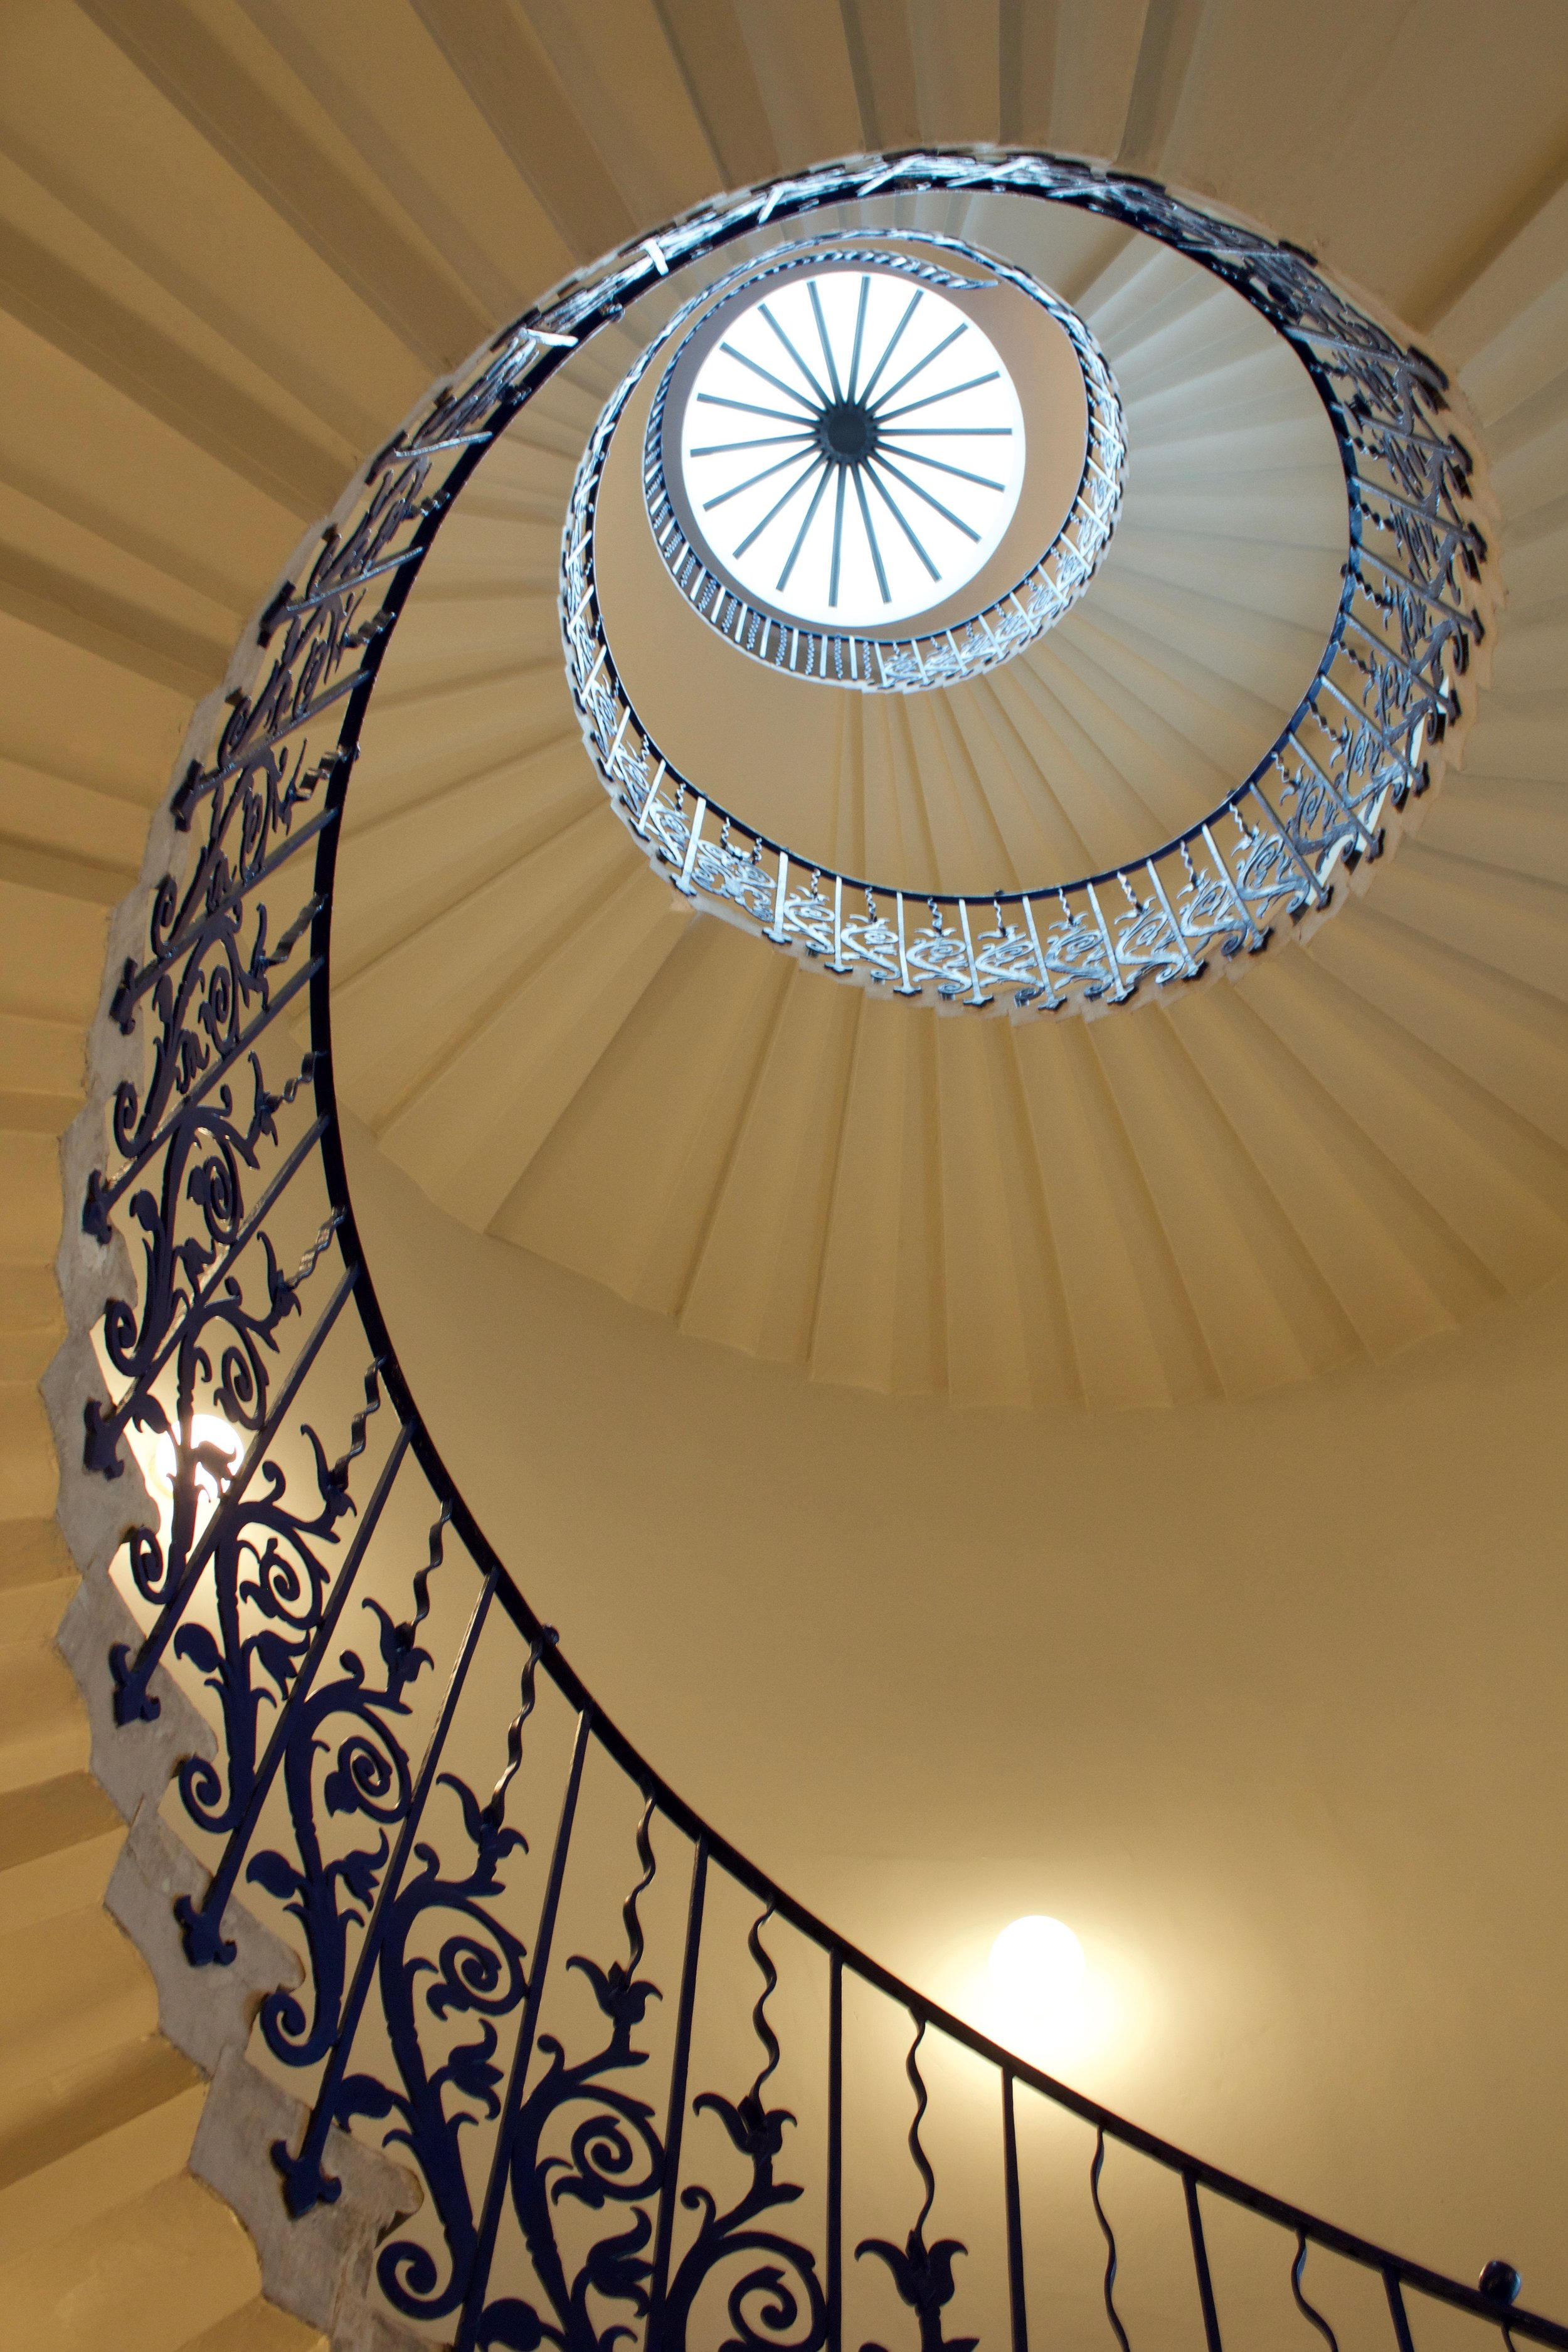 Tulip_Stairs_Queen's_House_.jpg